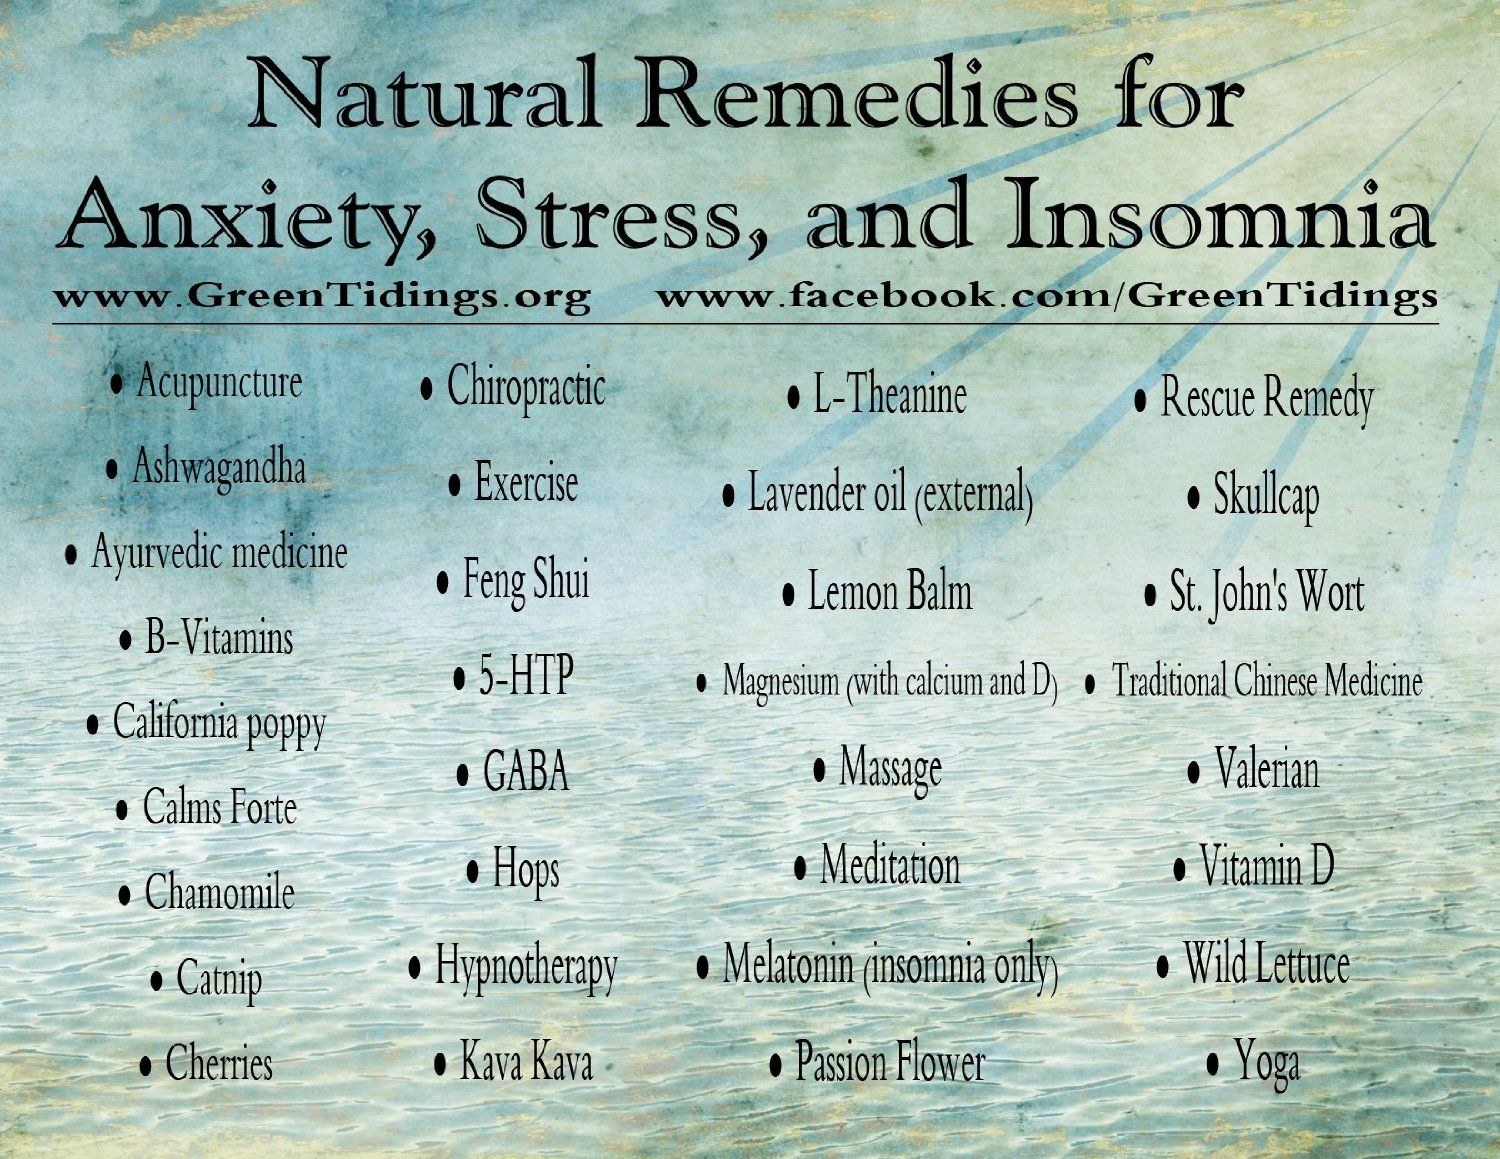 Natural Remedies for Anxiety, Stress & Insomnia (M